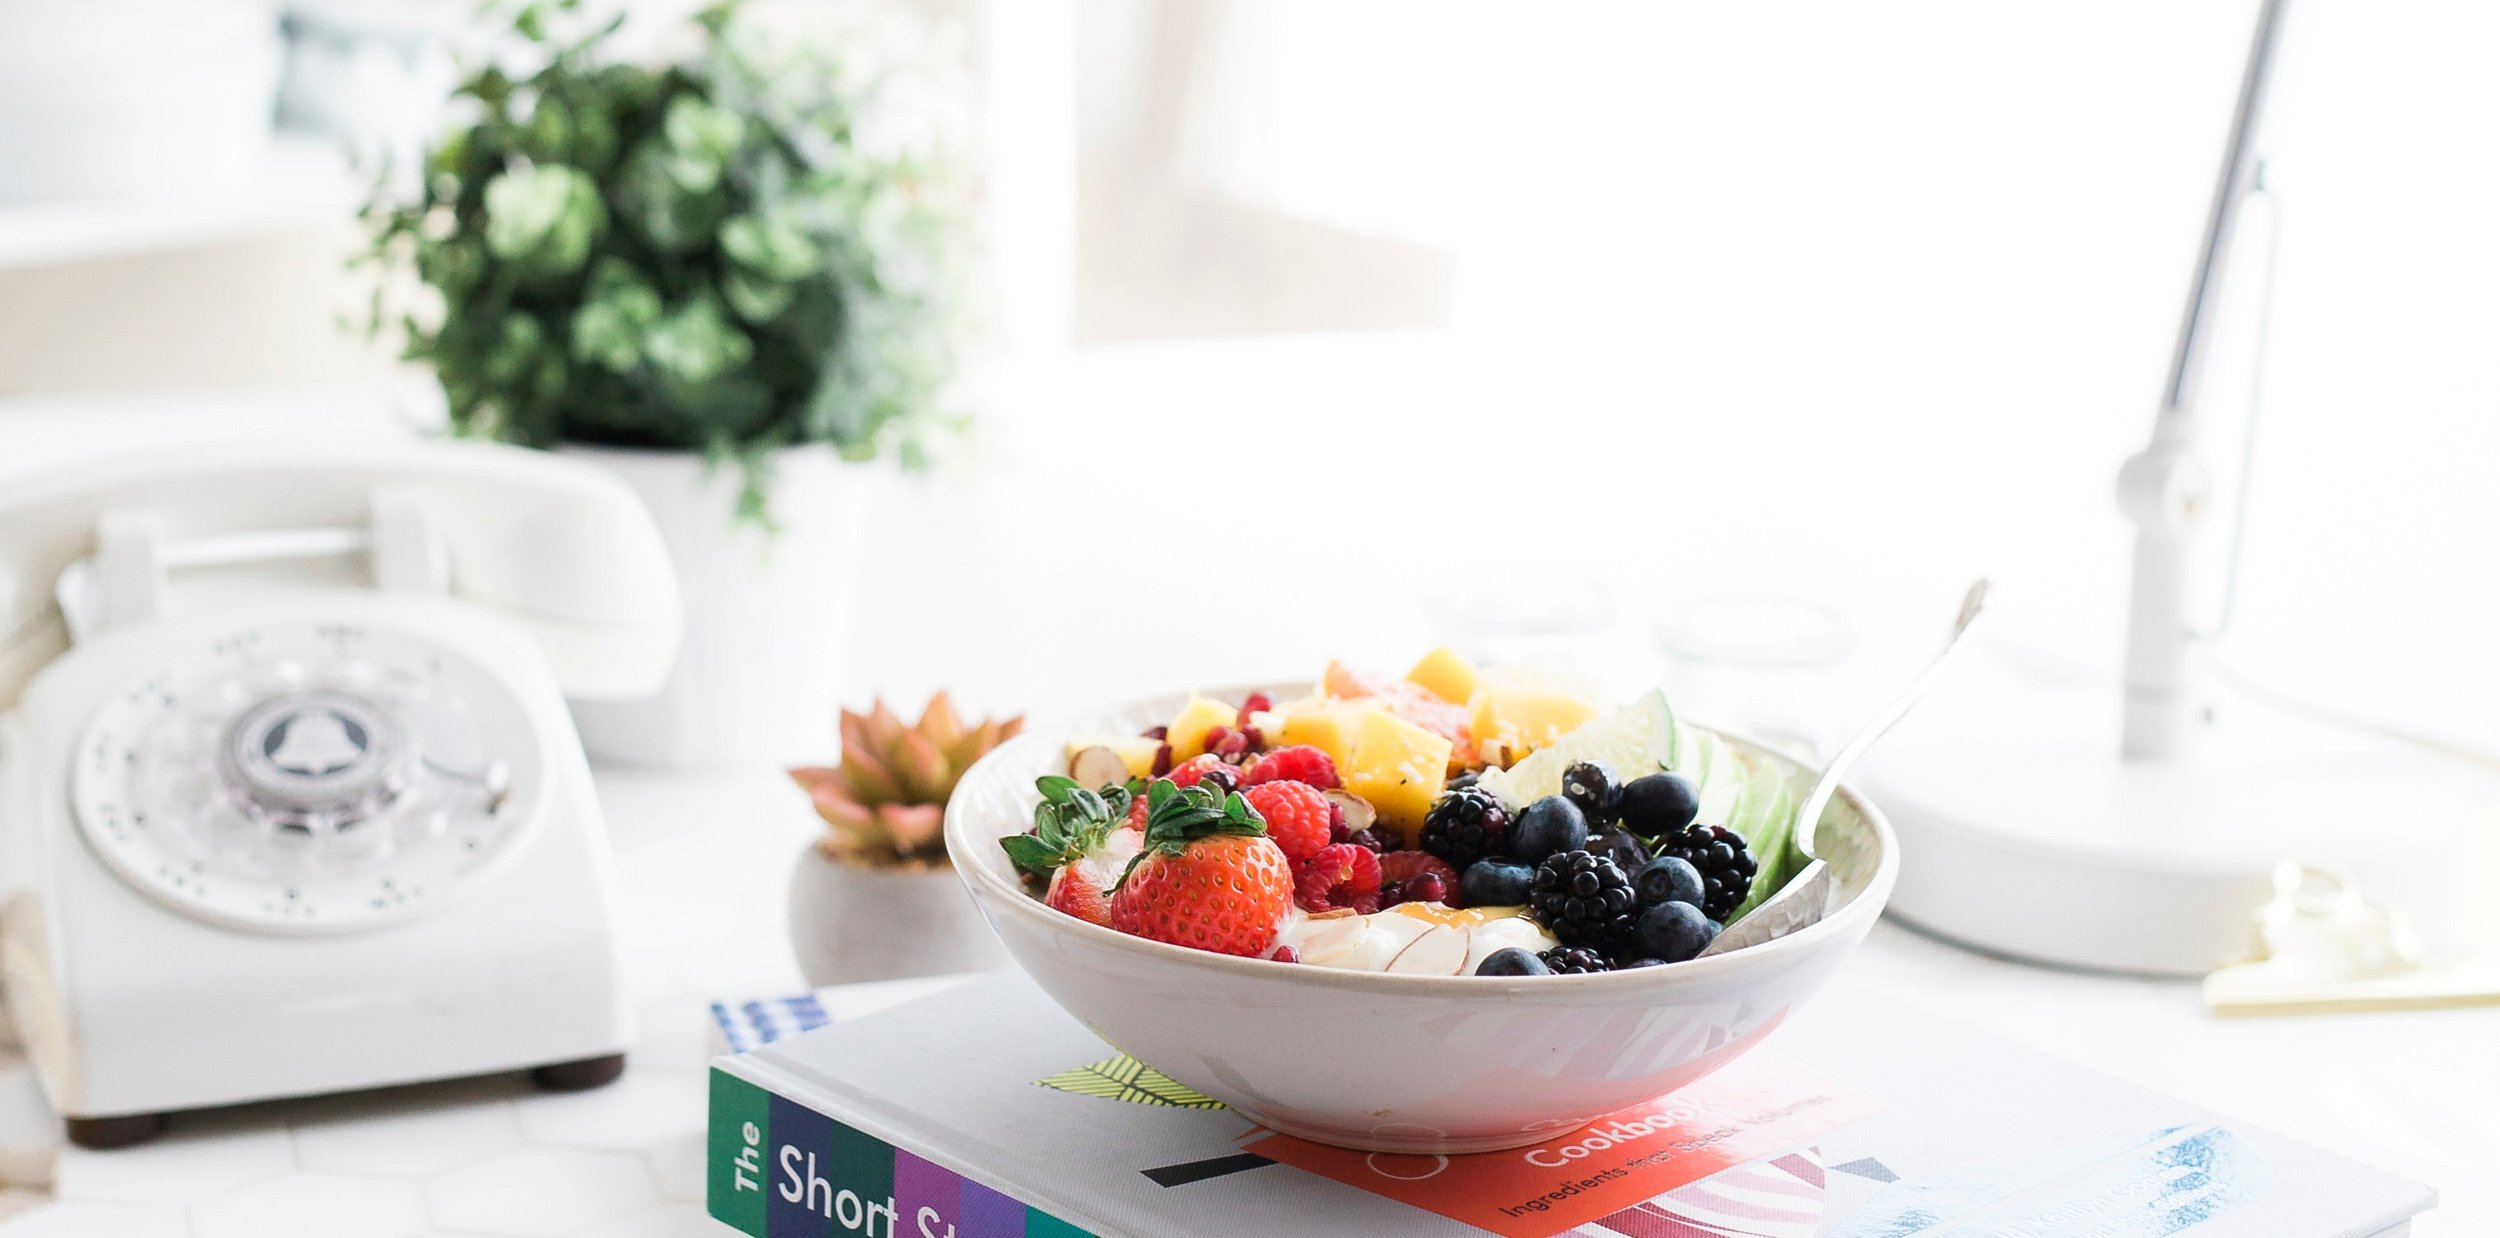 Tam John , founder of the  EatRight-LiveWell  holistic system for  smarter self care  encourages simple salads made with just a few of the freshest most tender ingredients. Try the Berry Green Salad featured in  A Fresh Wellness Mindset .   Photo by Mike Kenneally on Unsplash